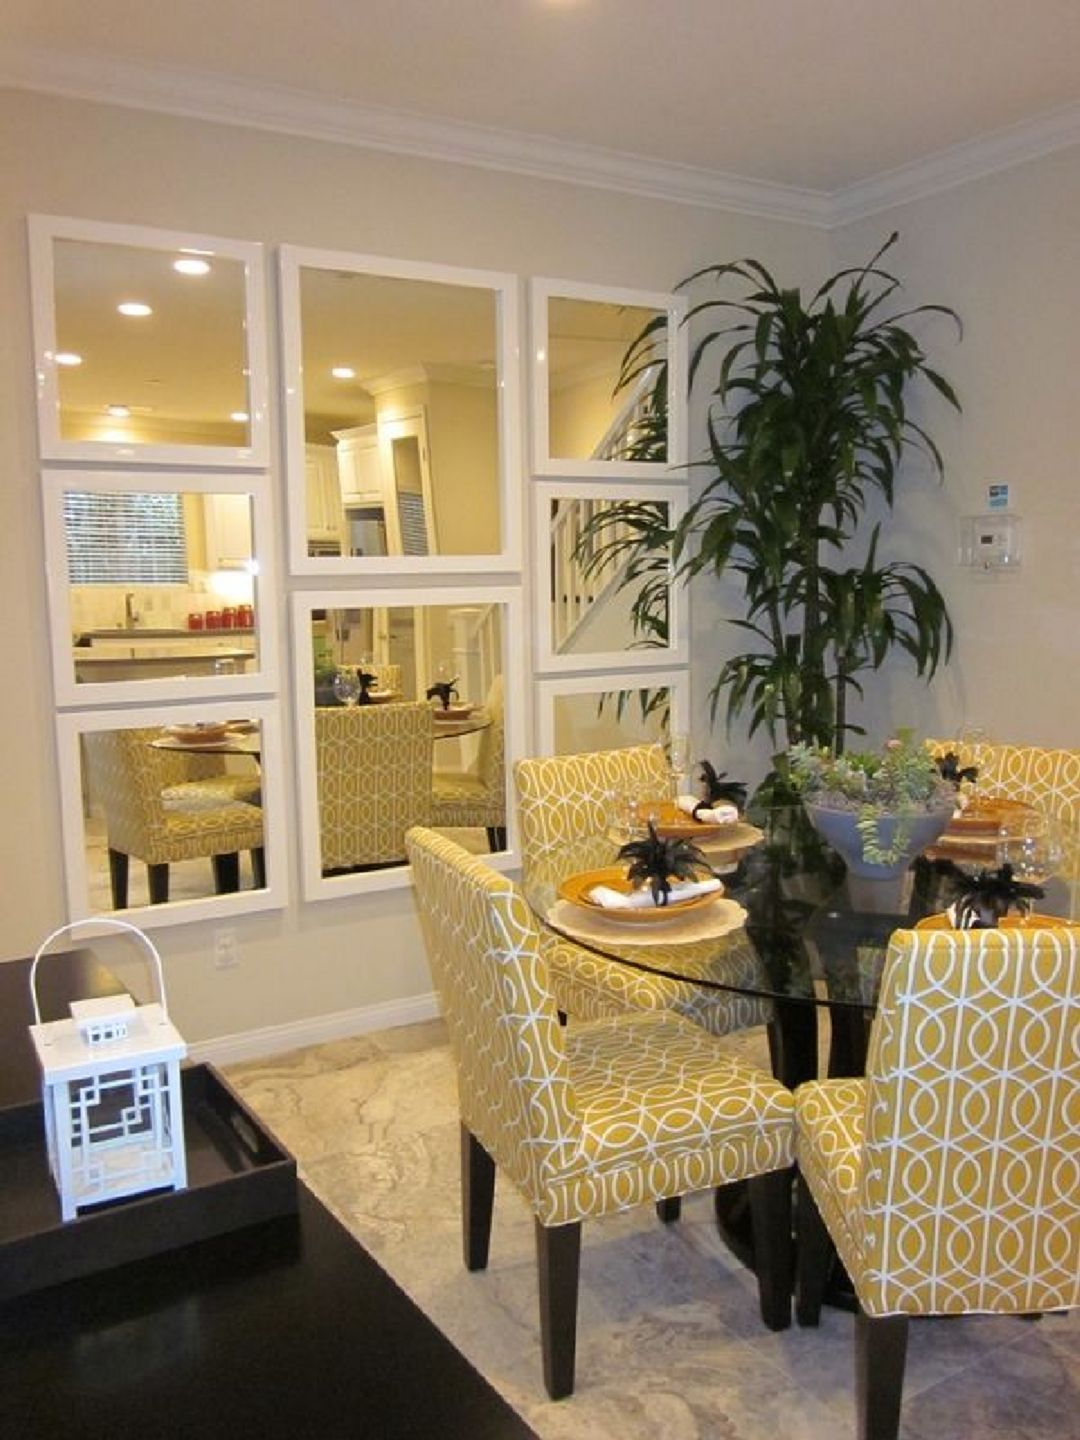 9 The Most Effective Tiny Dining Room Design Ideas images